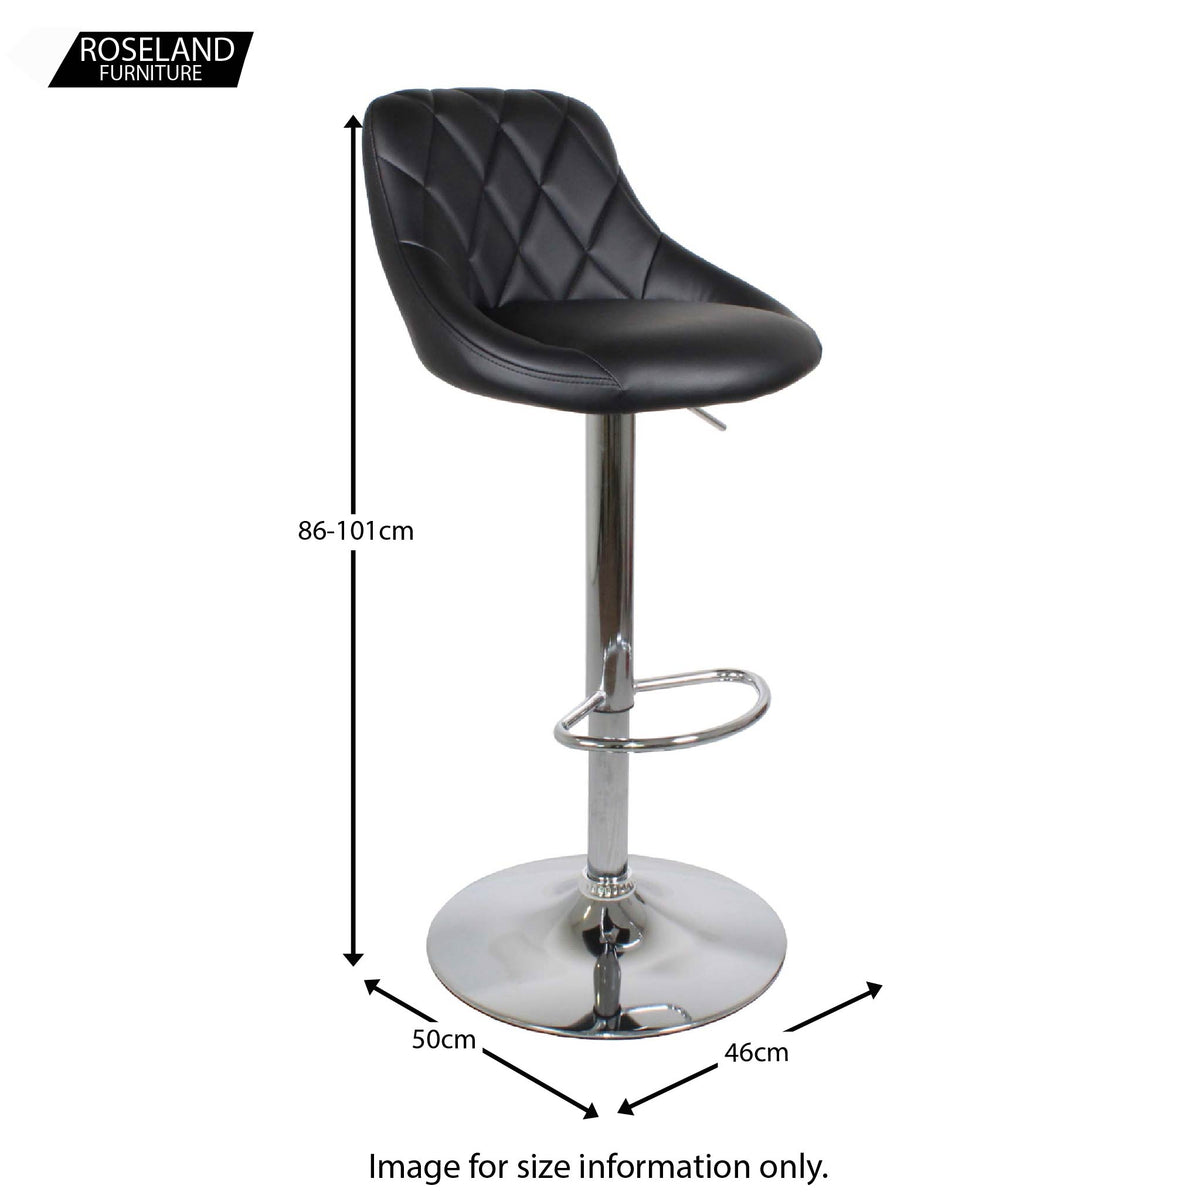 Dimensions for the Shadow Grey Abberley Adjustable Breakfast Bar Stool from Roseland Furniture